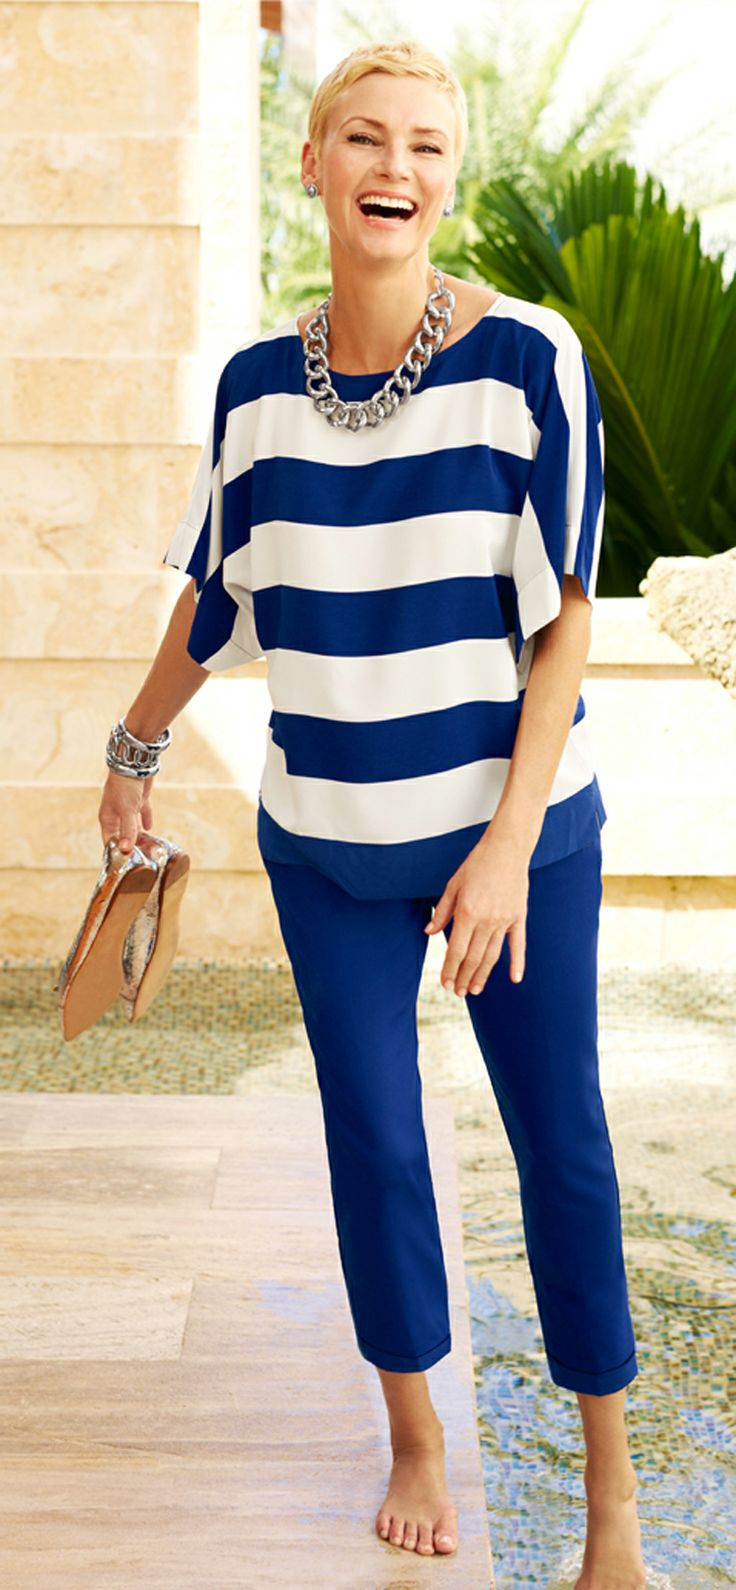 Bold Stripes Cana Top. #DestinationFabulous #travel #SoSlimming #spring #chicos